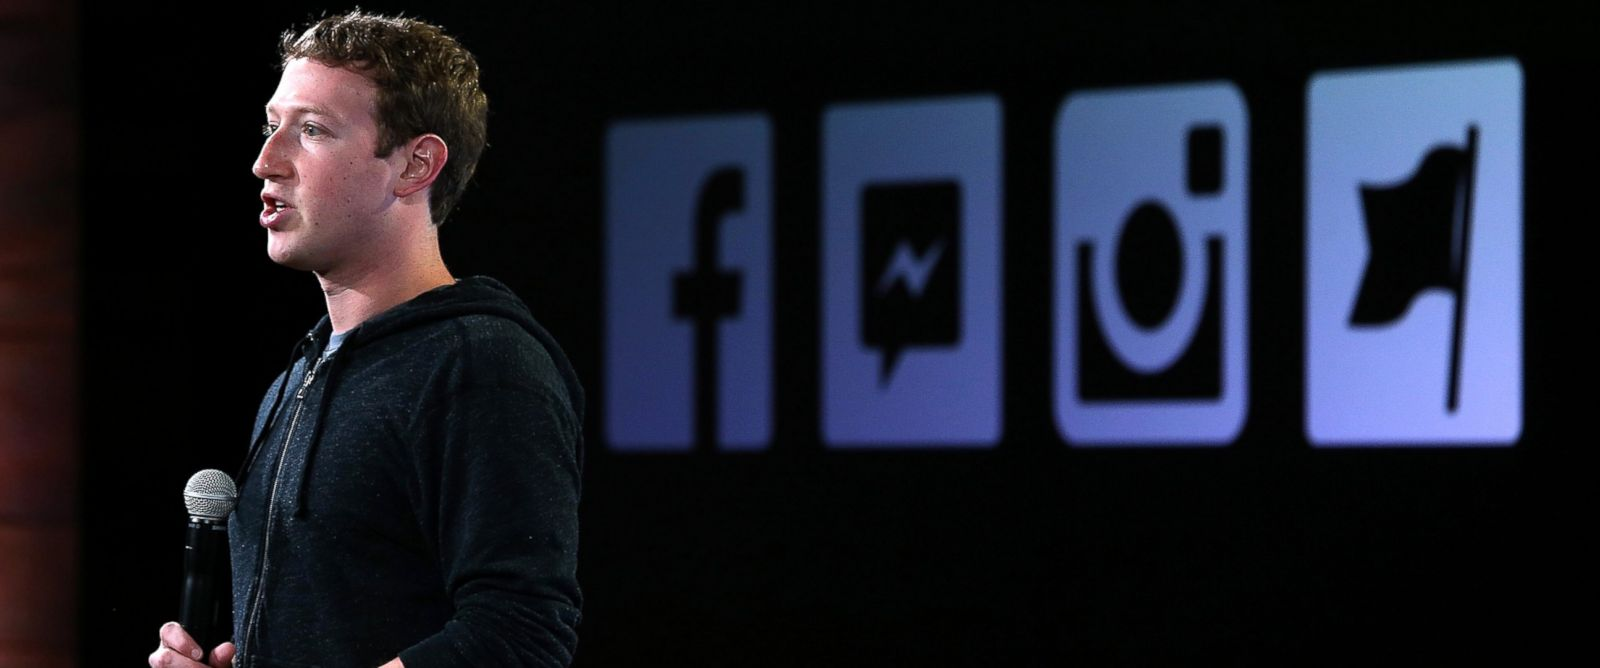 PHOTO: Facebook CEO Mark Zuckerberg speaks during a press event at Facebook headquarters, June 20, 2013, in Menlo Park, Calif.